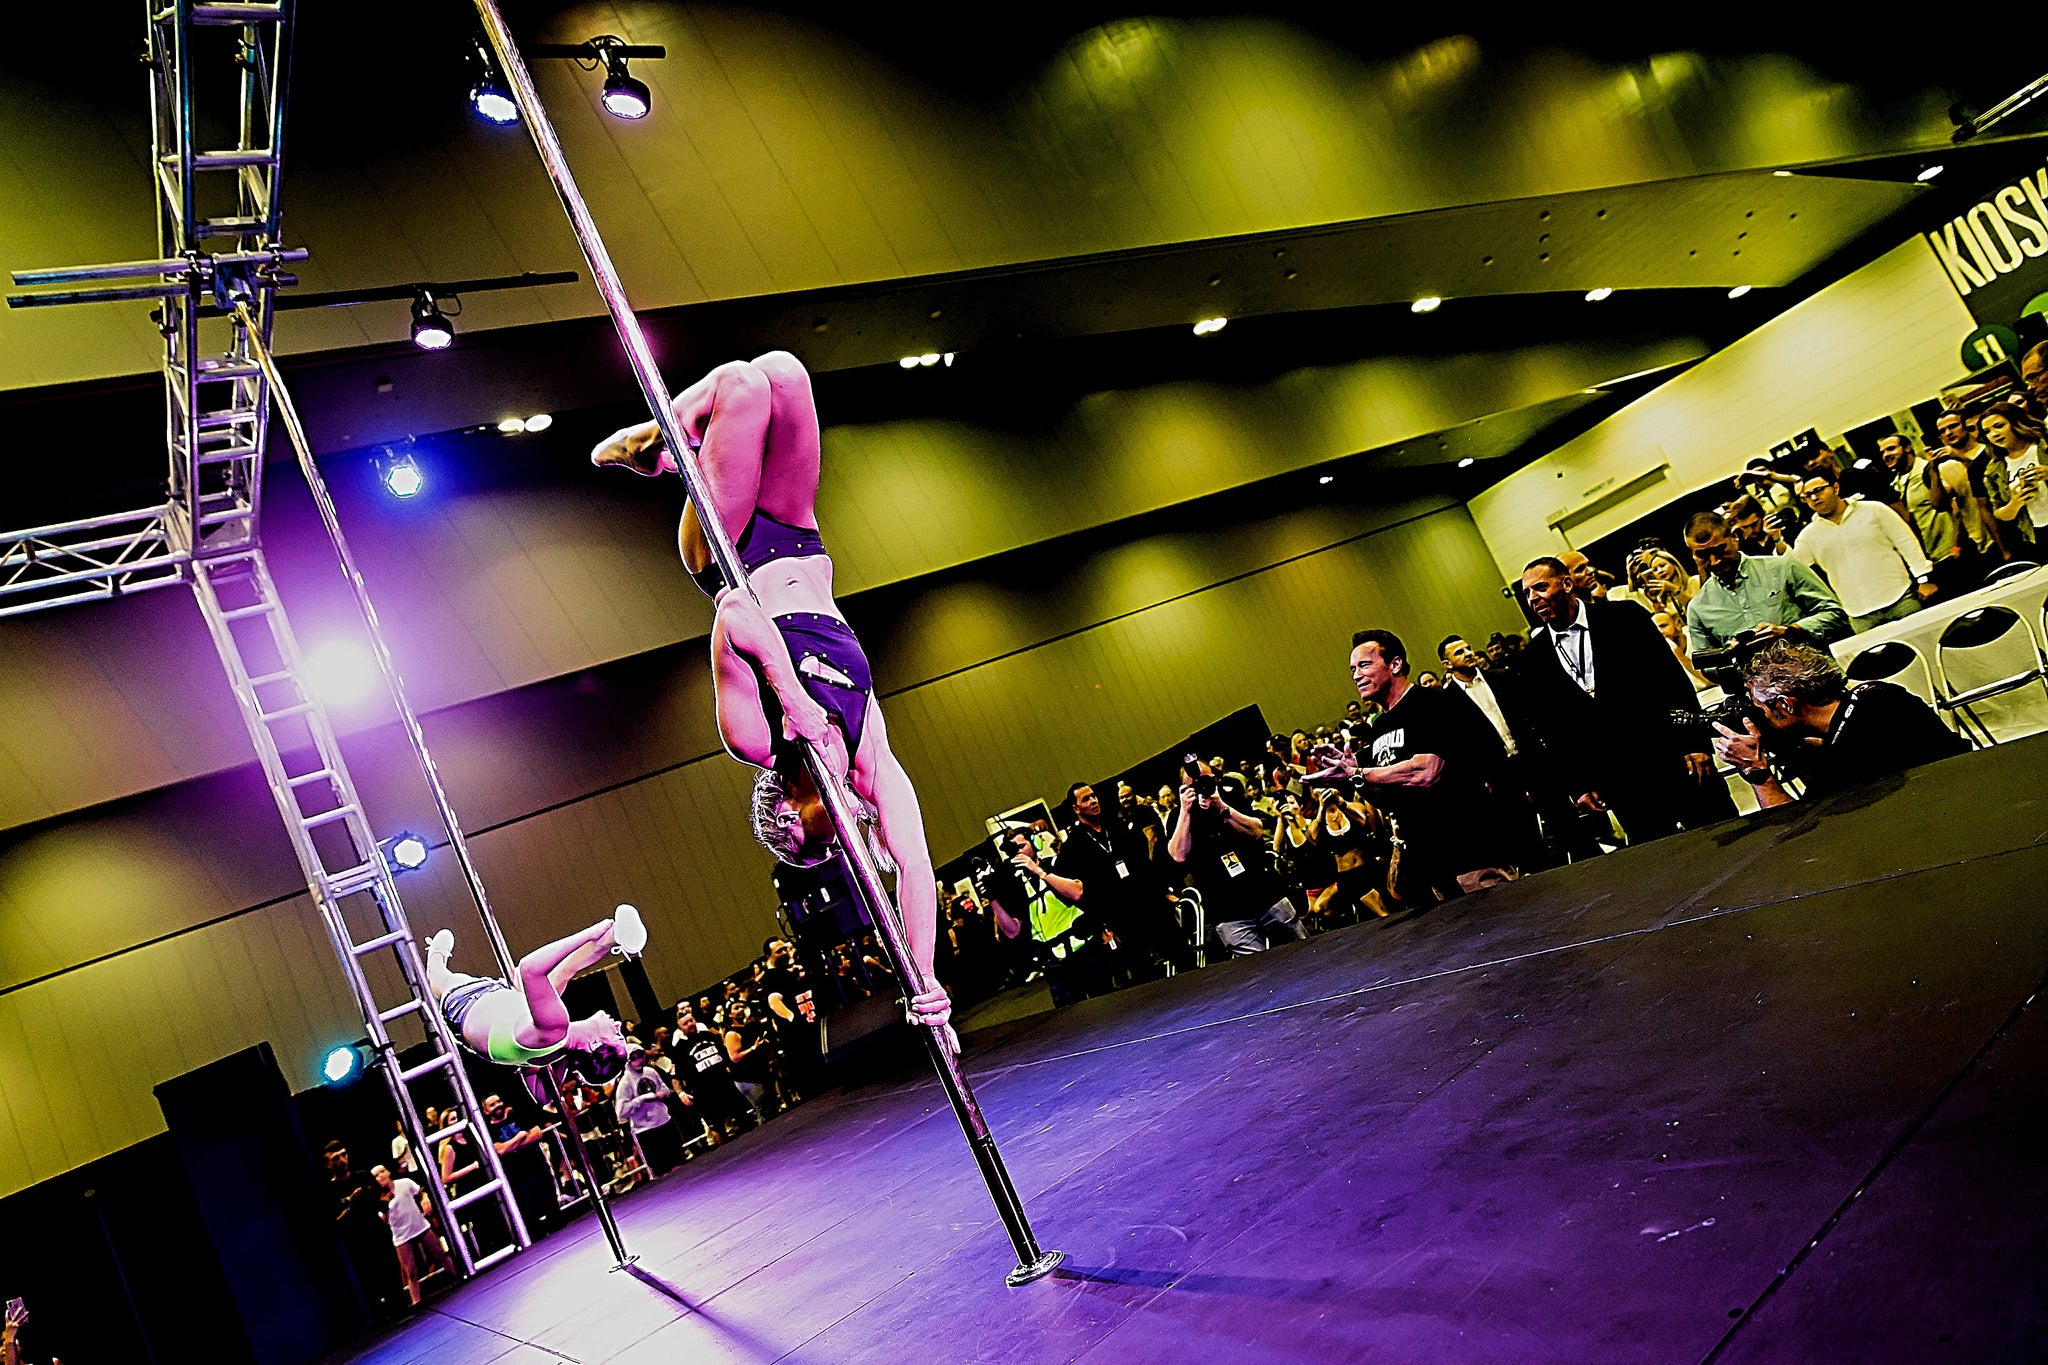 Sponsor and partner with the Pole Championship Series today. Be the first to take advantage of the pole fitness segment that is experiencing phenomenal growth.